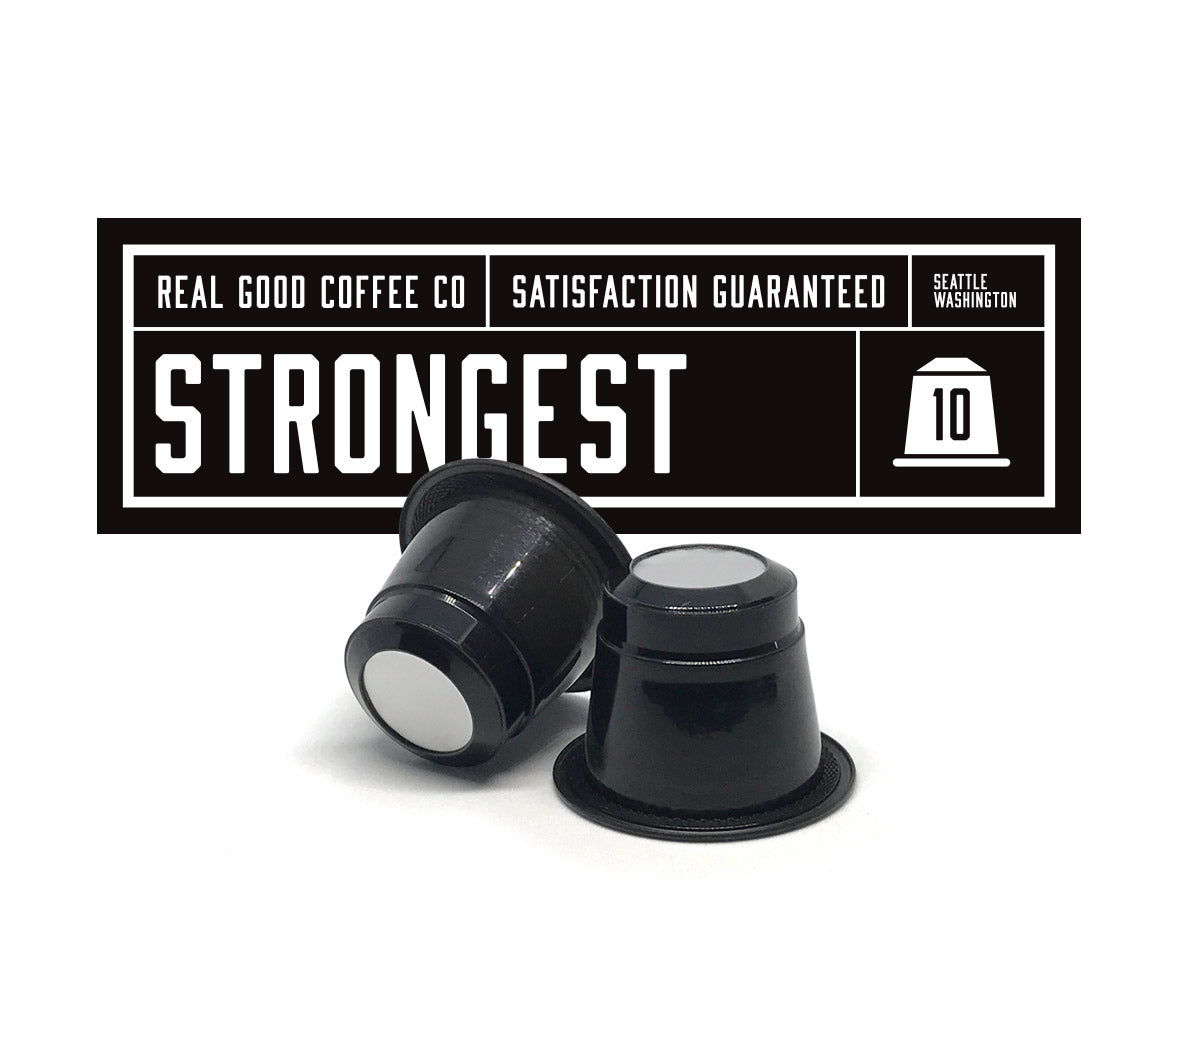 Strongest Pods for Nespresso